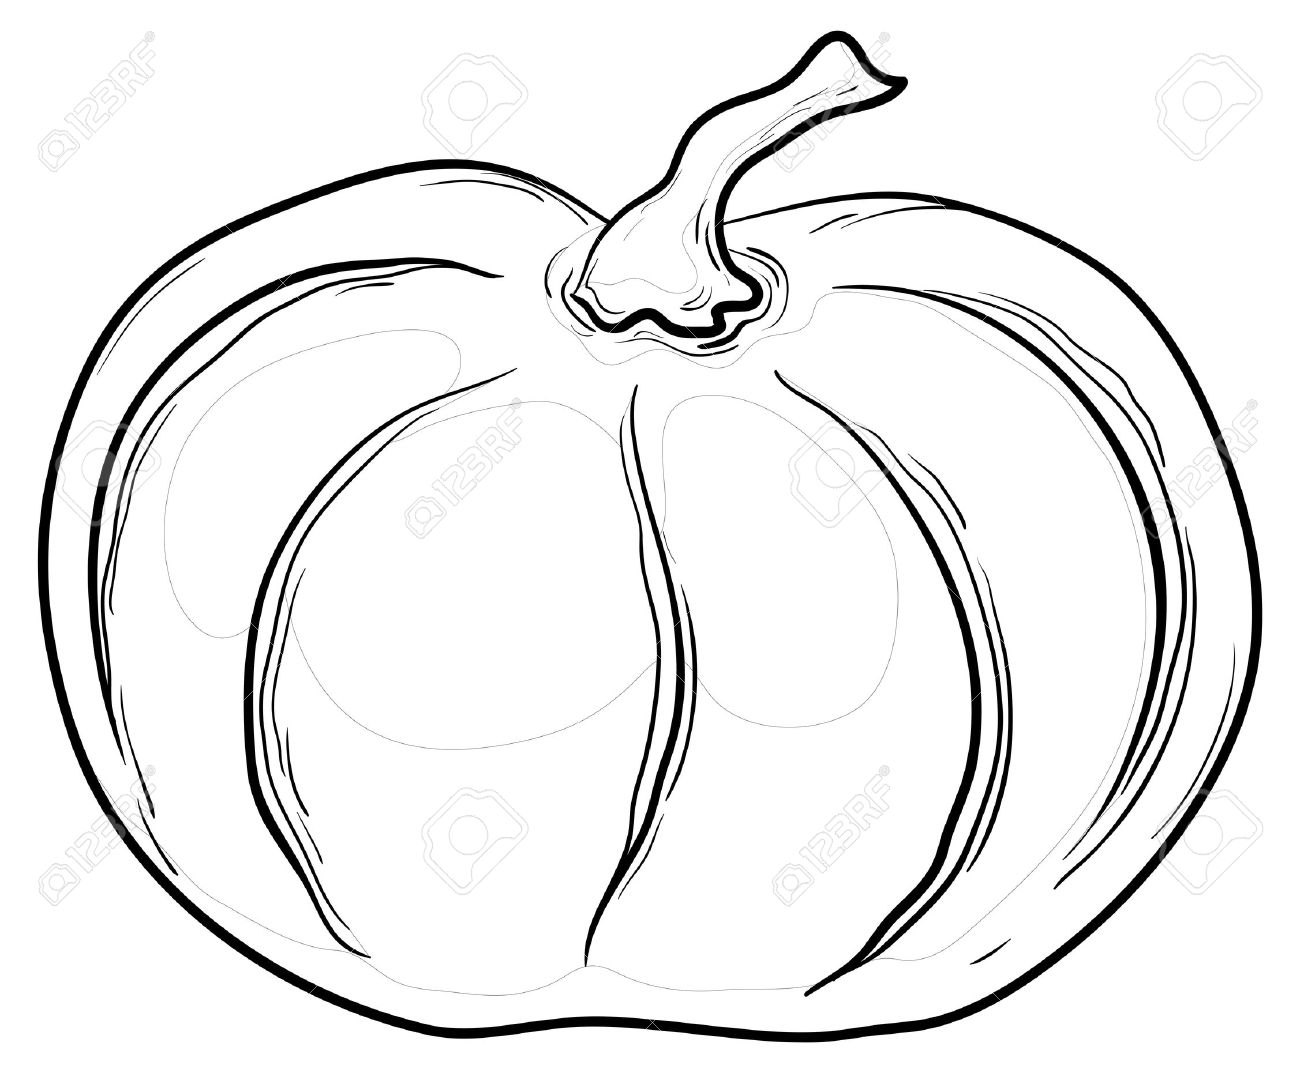 Vegetable Pumpkin Vector Monochrome Graphic Contours On White